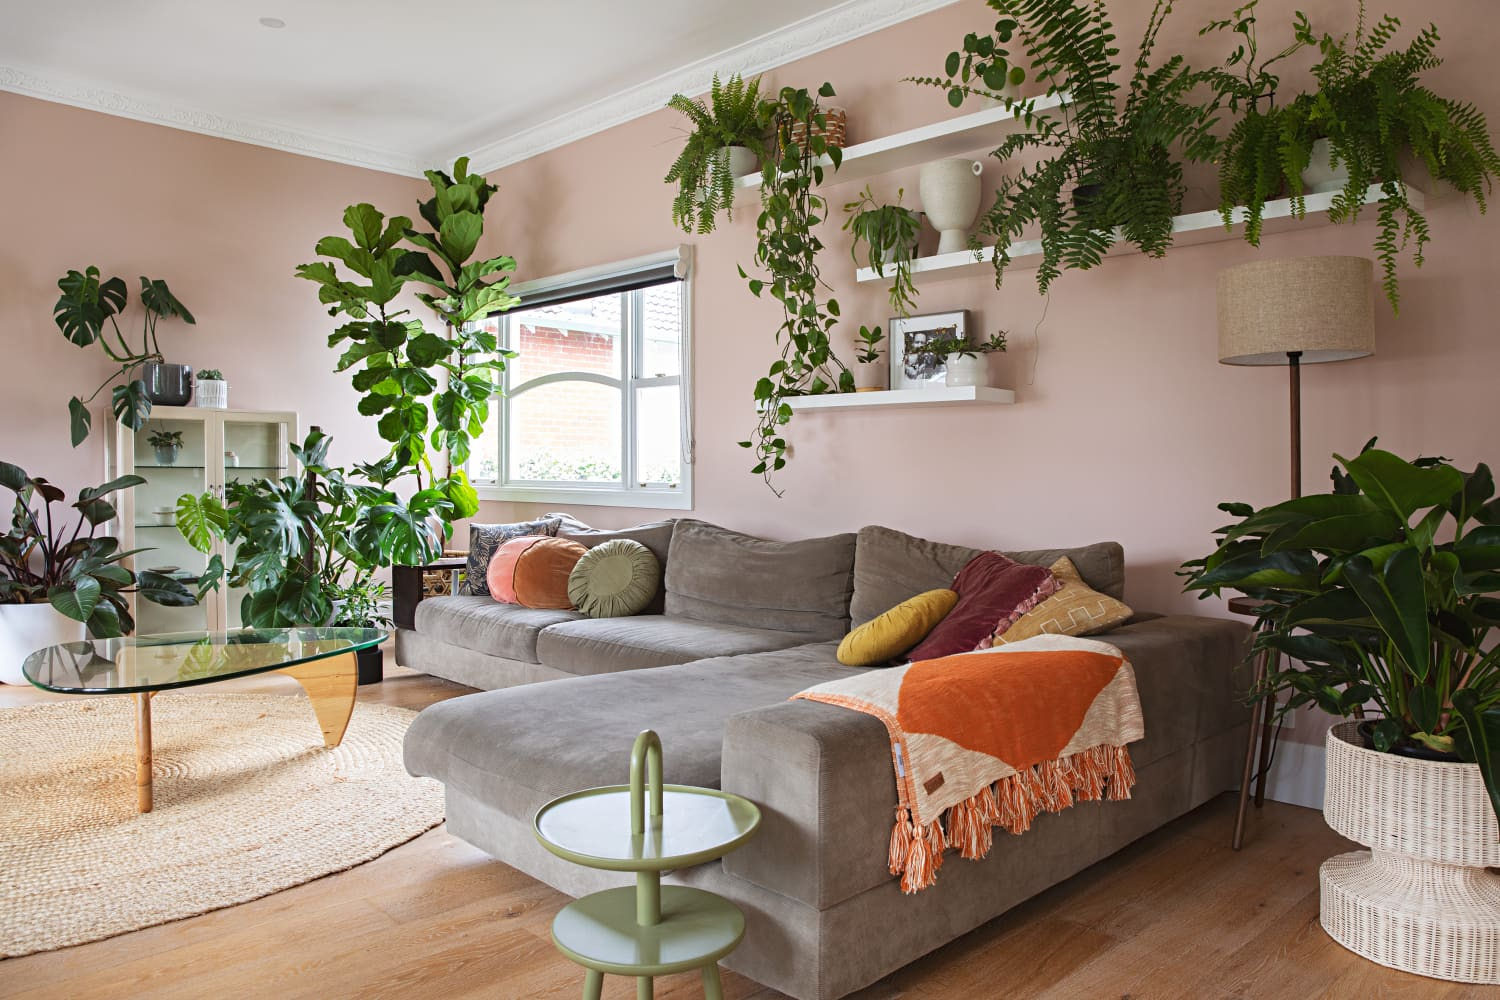 This Gorgeous, Plant-Filled Australia Home Also Features One of the Most Unique WFH Setups We've Ever Seen